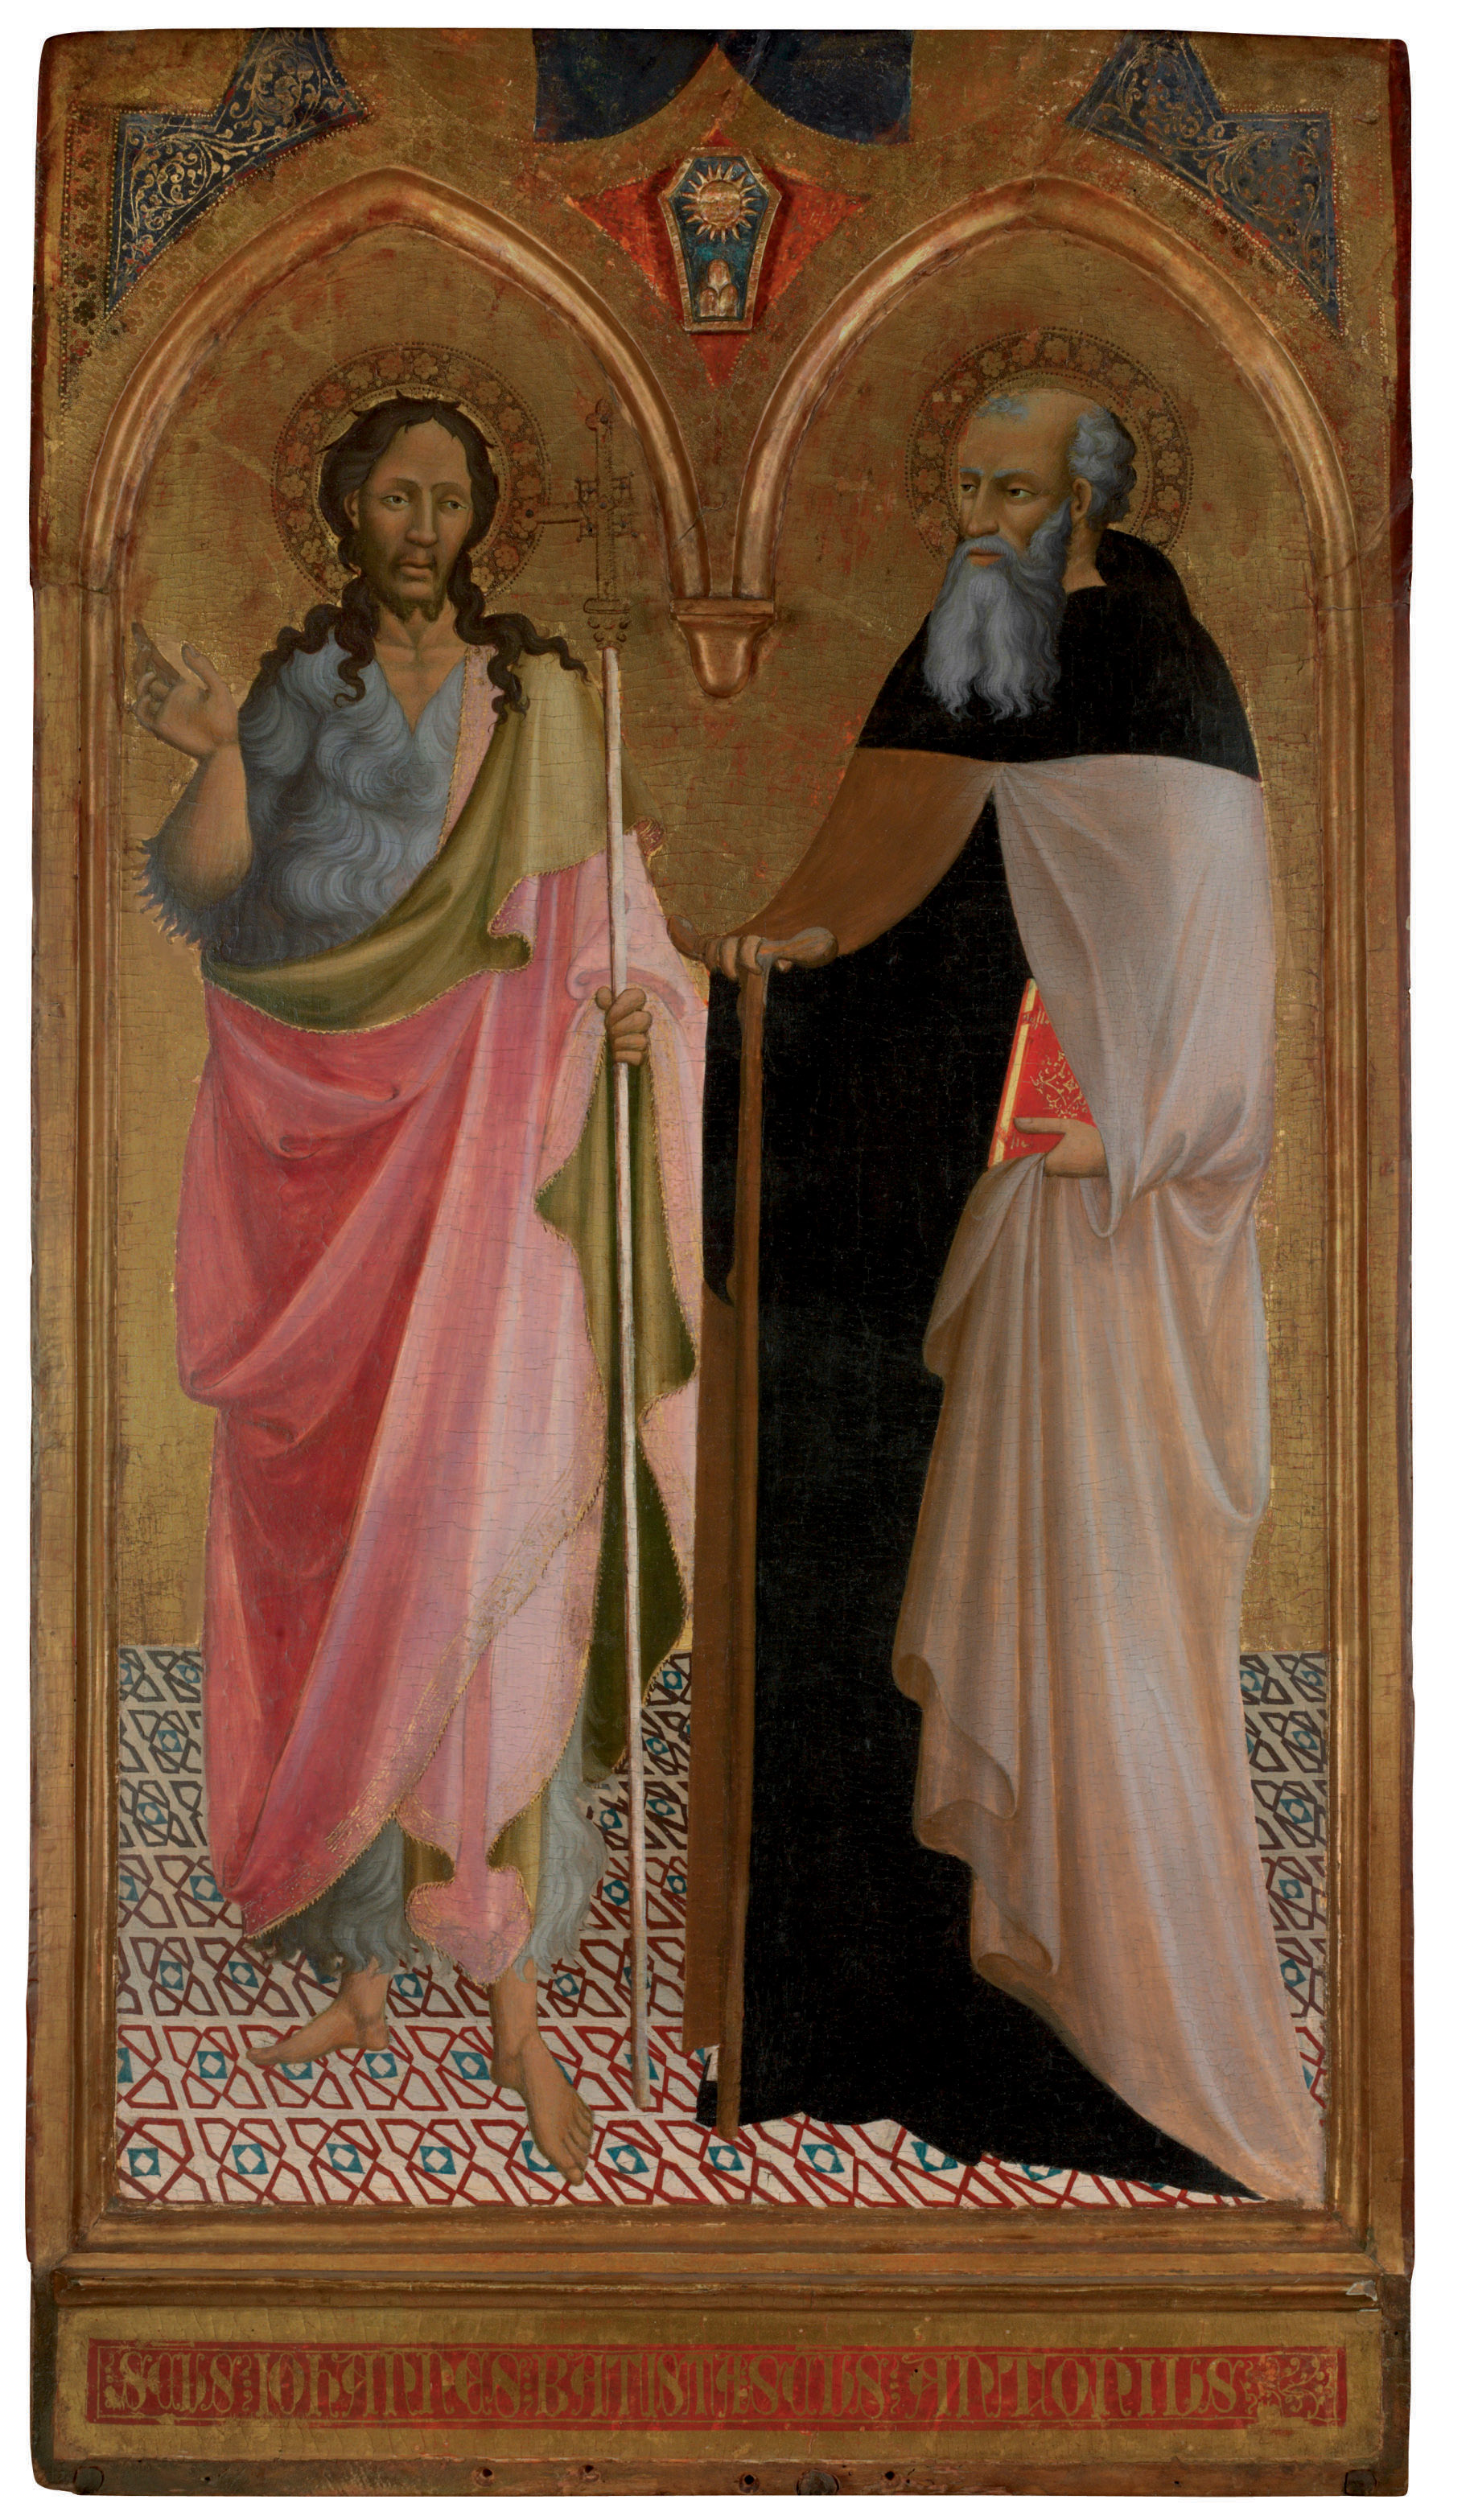 Battista di Biagio Sanguigni (Florence 1393-1451), formerly known as the Master of 1419